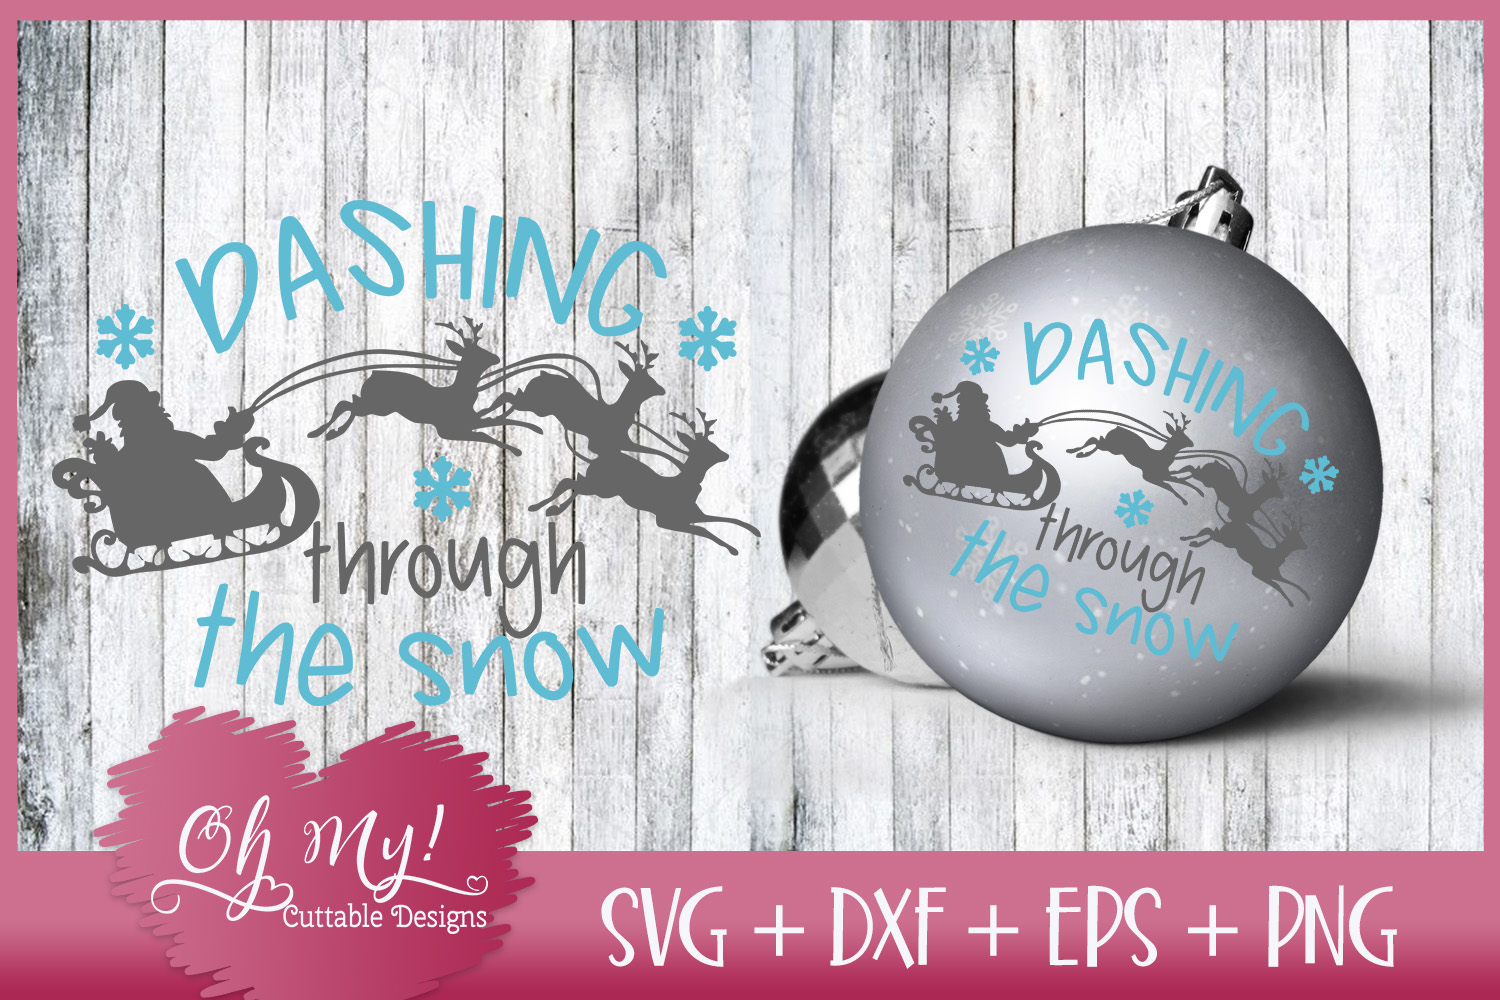 Dashing Through The Snow - SVG EPS DXF Cutting File example image 2